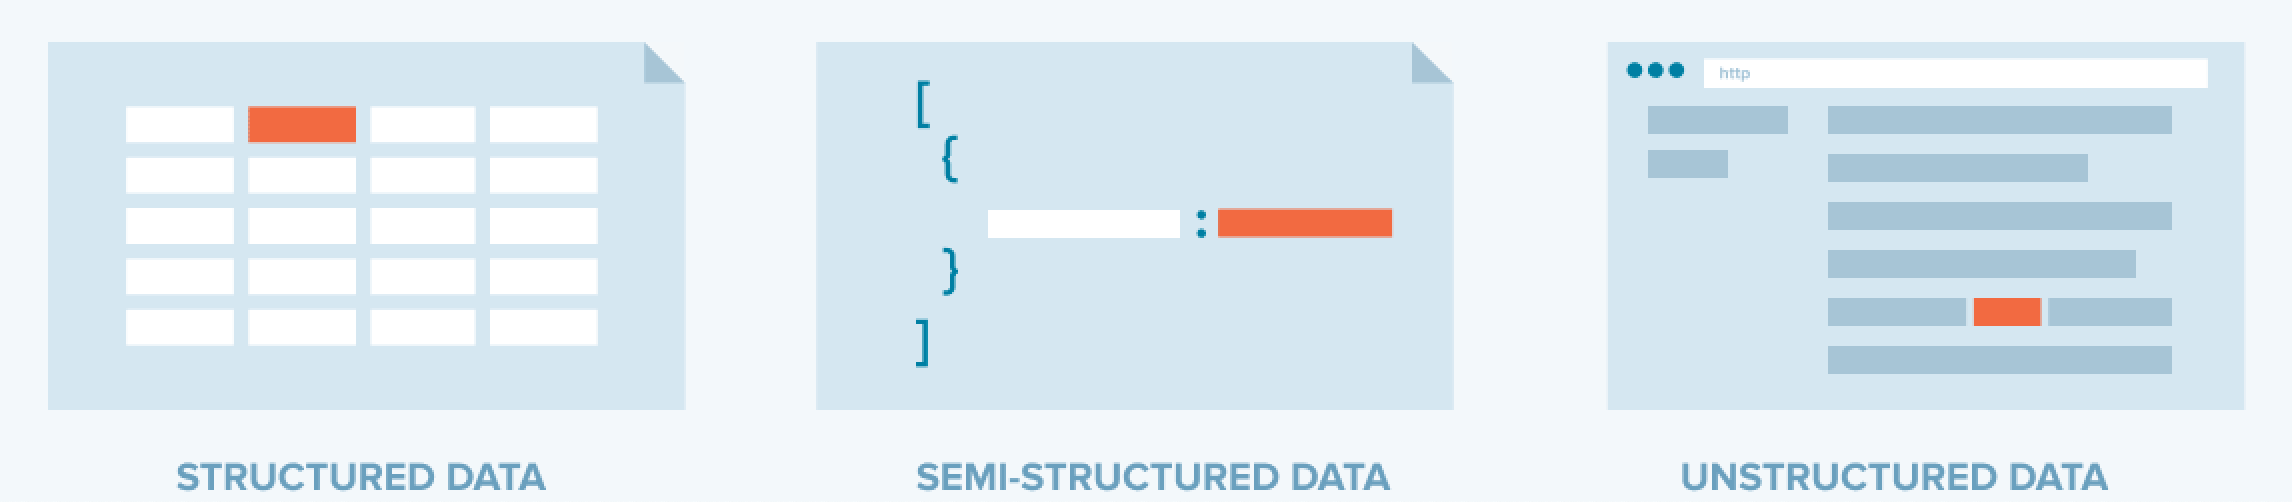 Structured, semi-structured, and unstructured data.